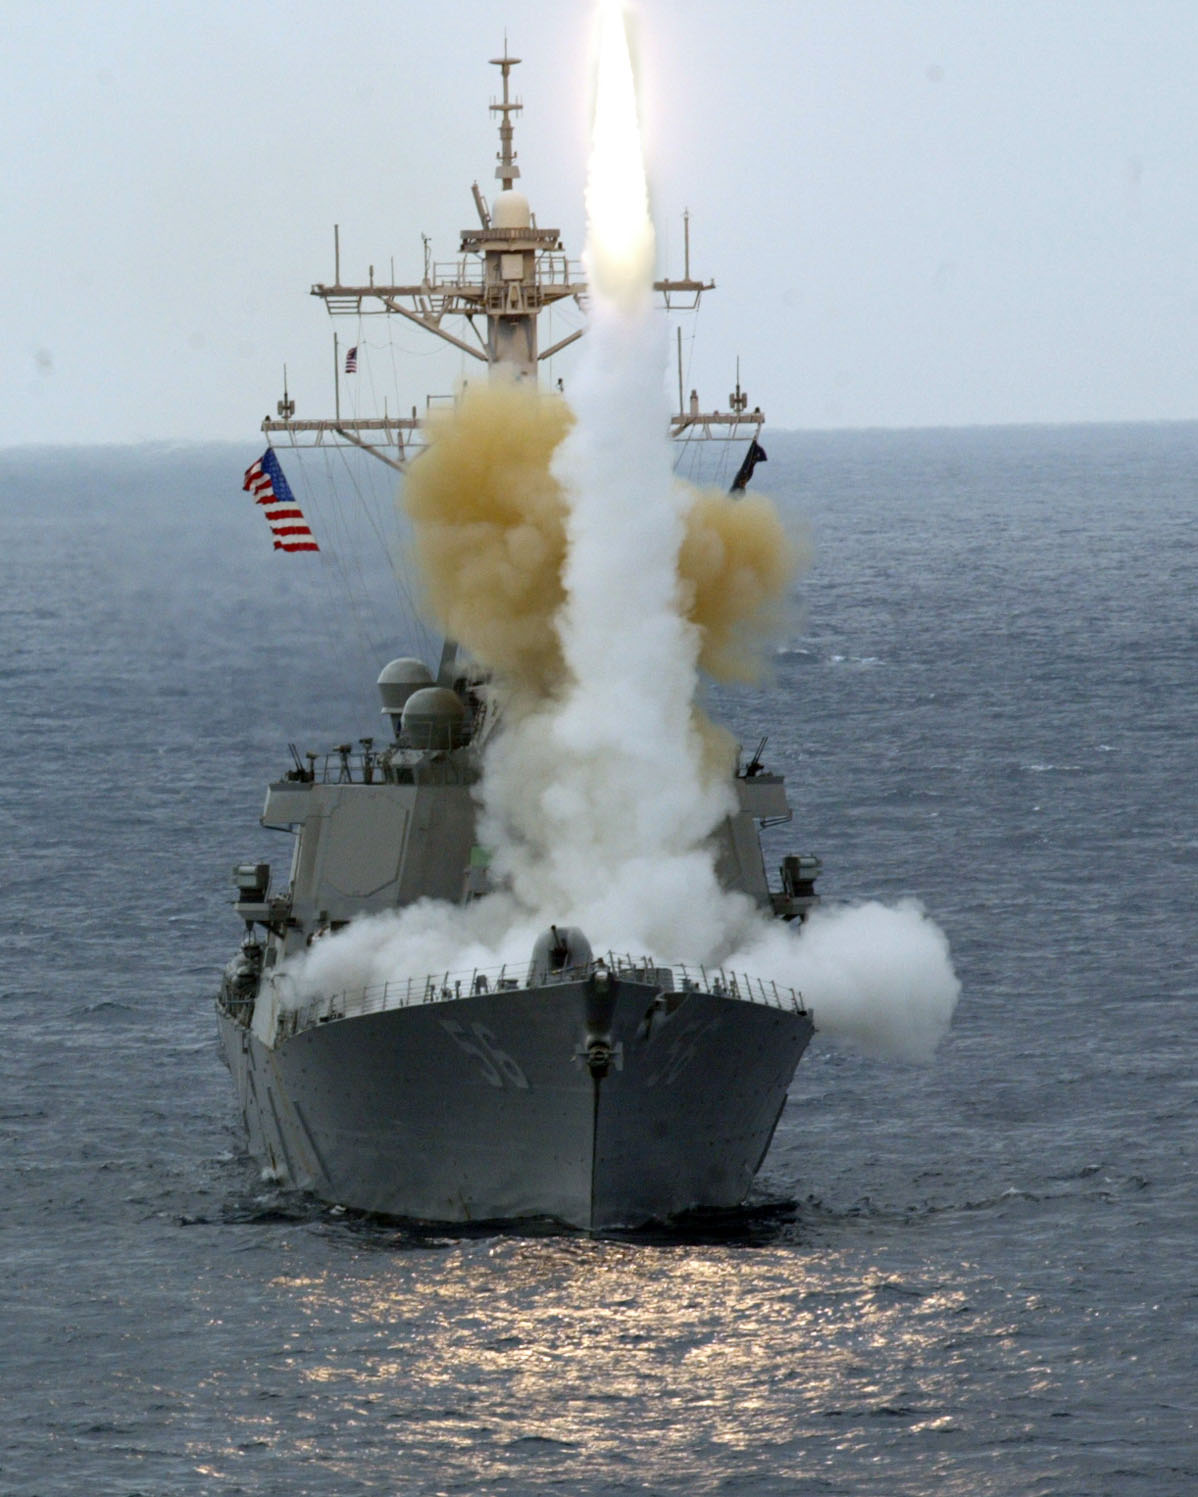 US Navy 040206-N-2970T-001 Guided missile destroyer USS John S. McCain (DDG 56) fires a RIM-66 standard surface-to-air missile during a training exercise